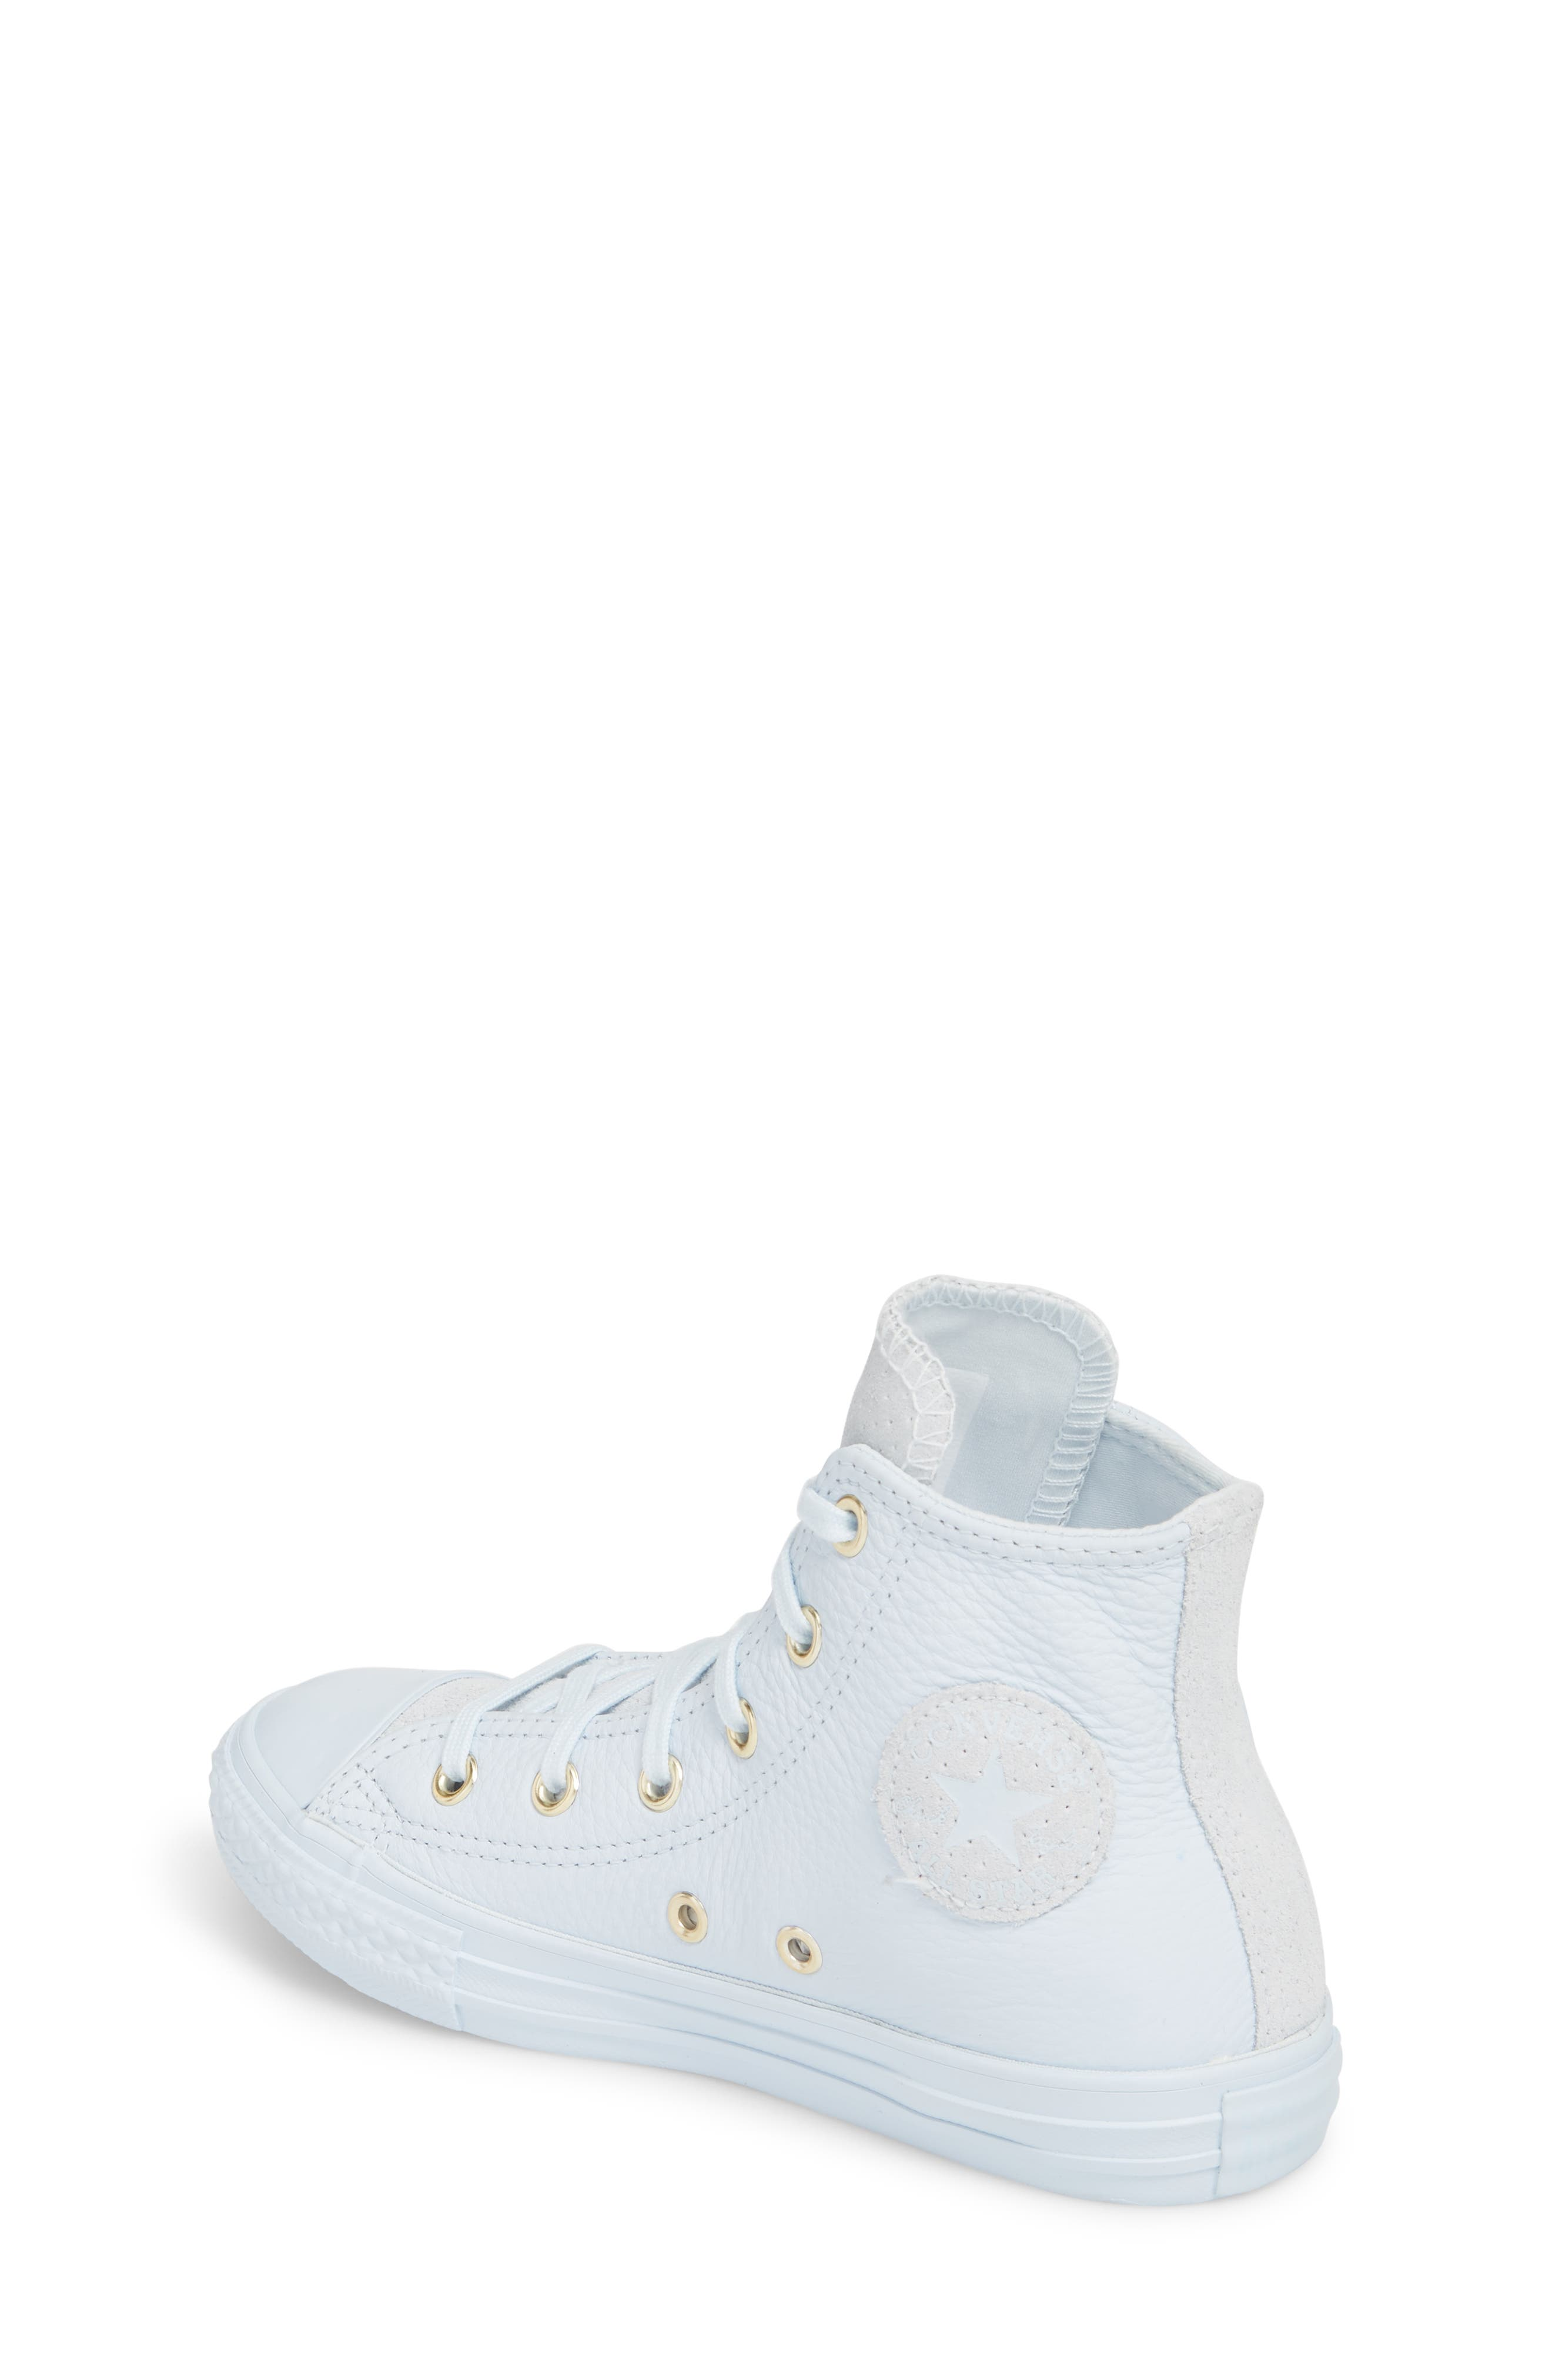 Chuck Taylor<sup>®</sup> All Star<sup>®</sup> Mono High Top Sneaker,                             Alternate thumbnail 2, color,                             Blue Tint